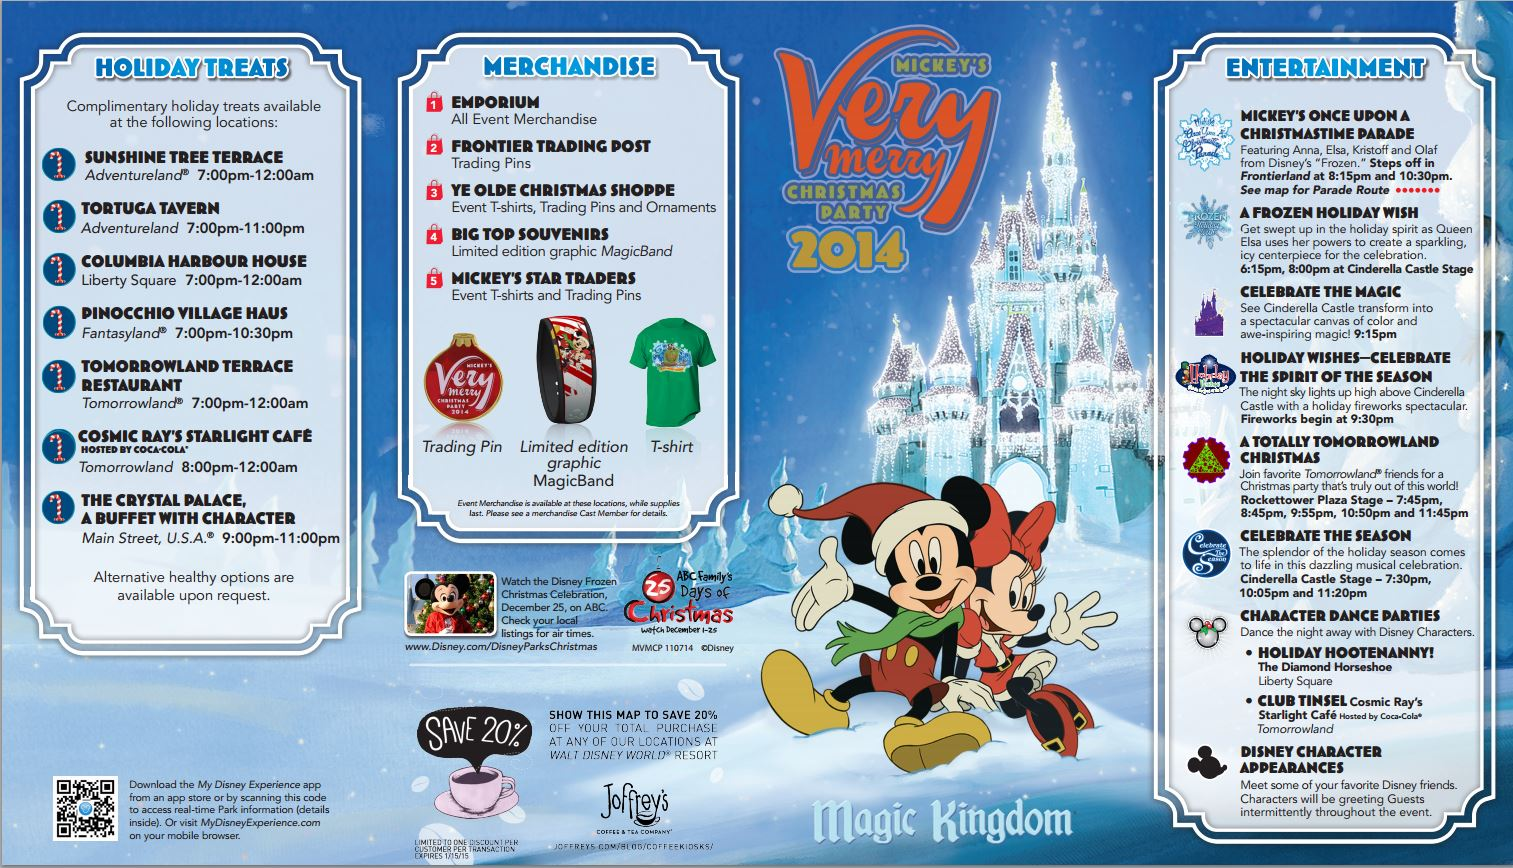 christmas party 2014 map information and ticket pricing click the images to enlarge this information is accurate as of november 5 2014 but is always - Disney Christmas Party Tickets